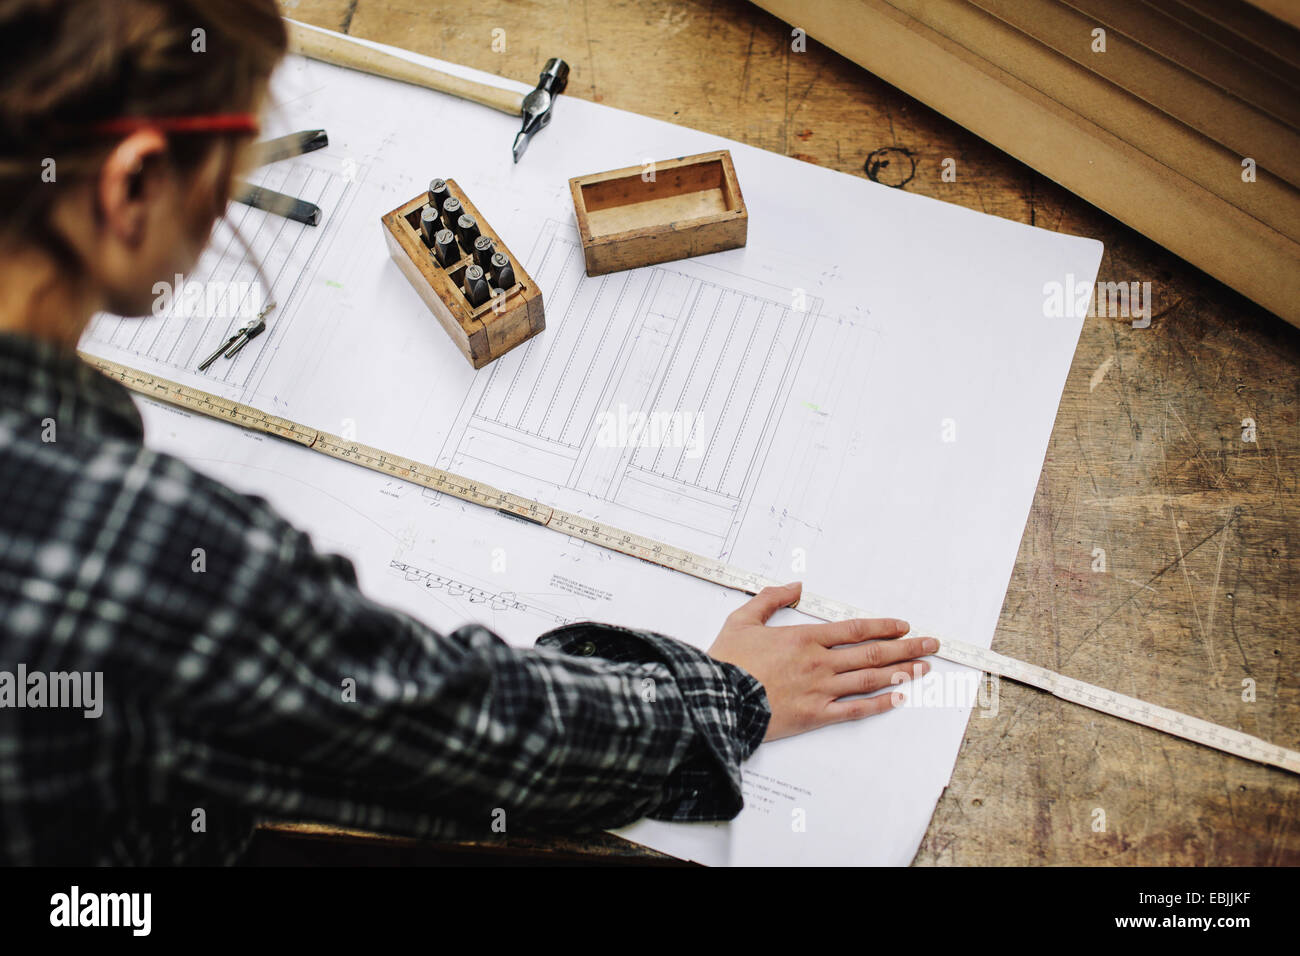 Young craftswoman measuring blueprint in pipe organ workshop - Stock Image